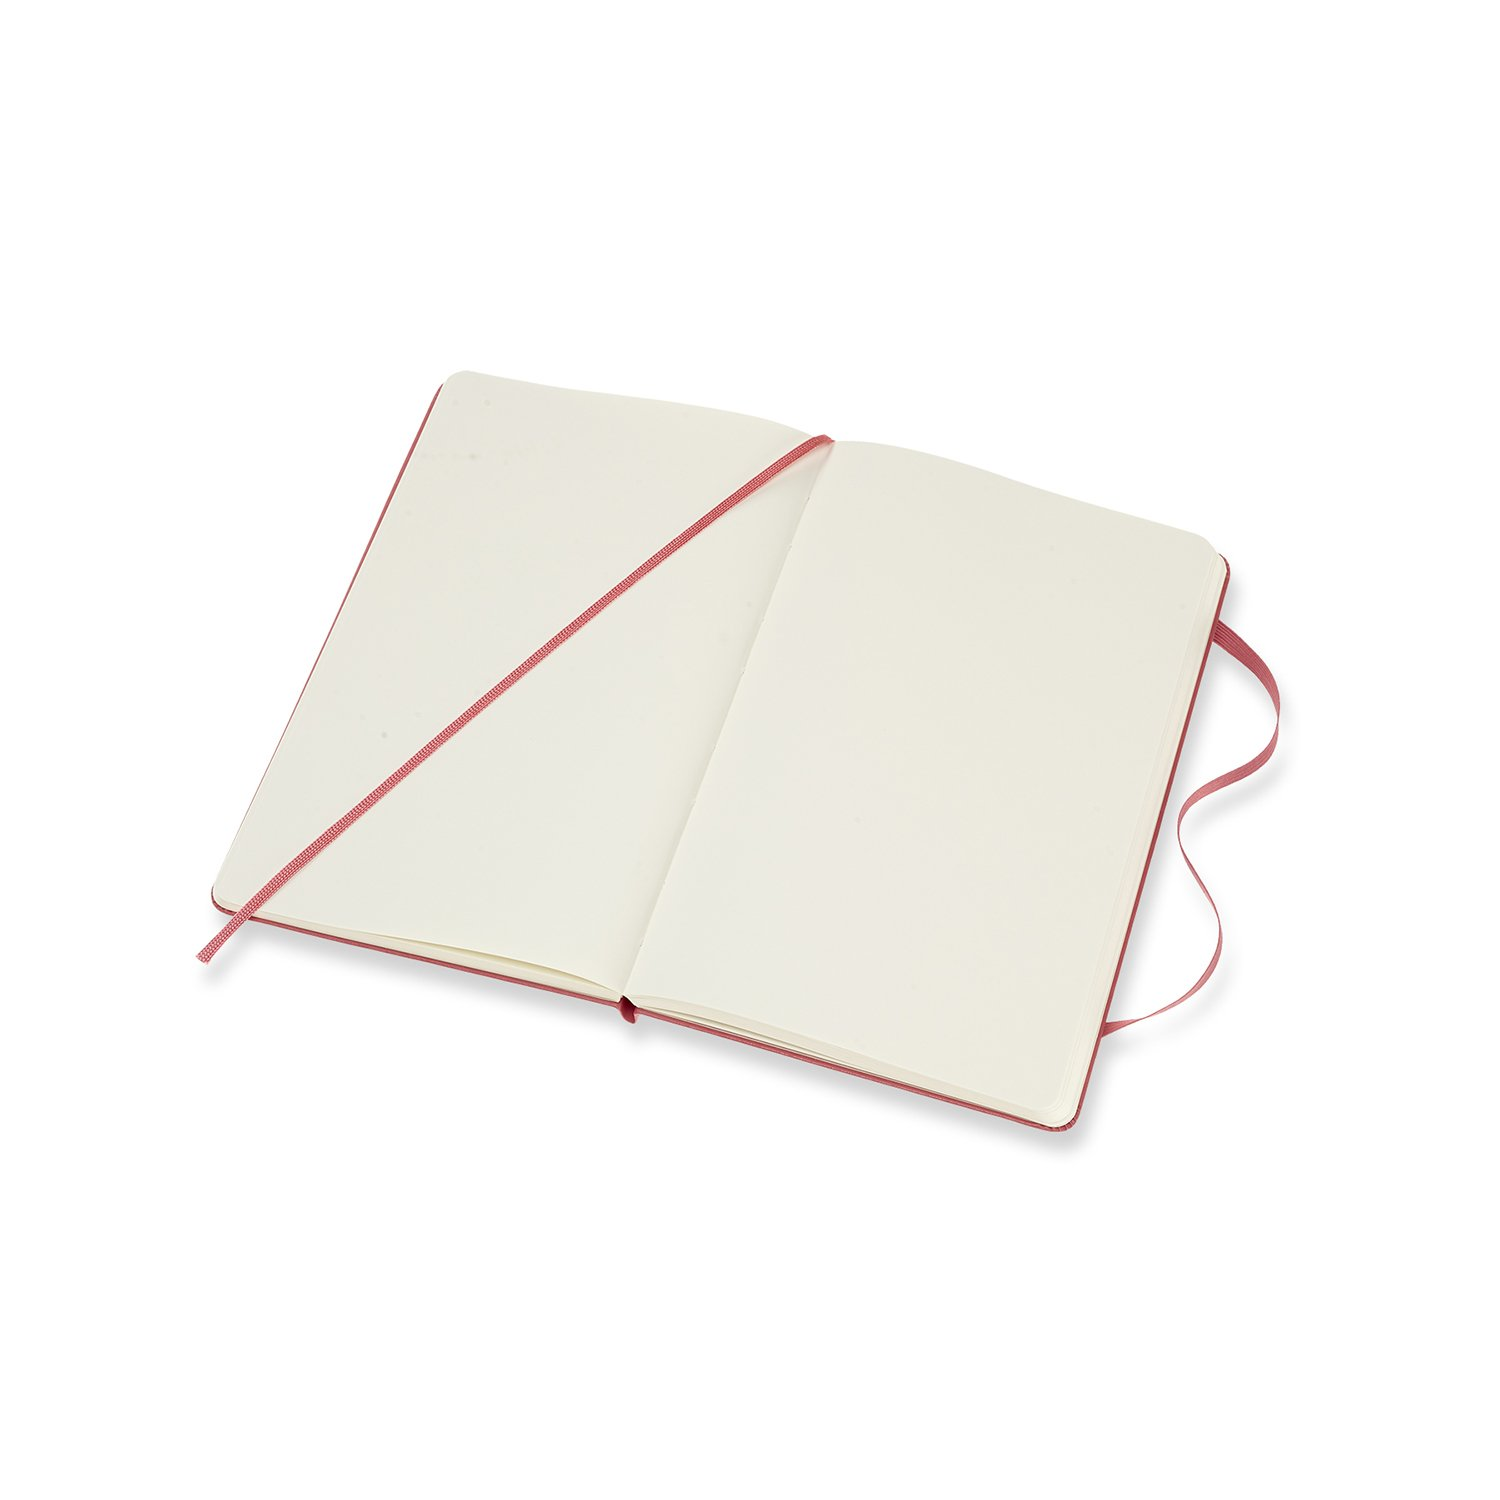 Classic Plain Paper Notebook Color Black Hard Cover and Elastic Closure Journal Size Medium 11.5 x 18-208 Pages Moleskine